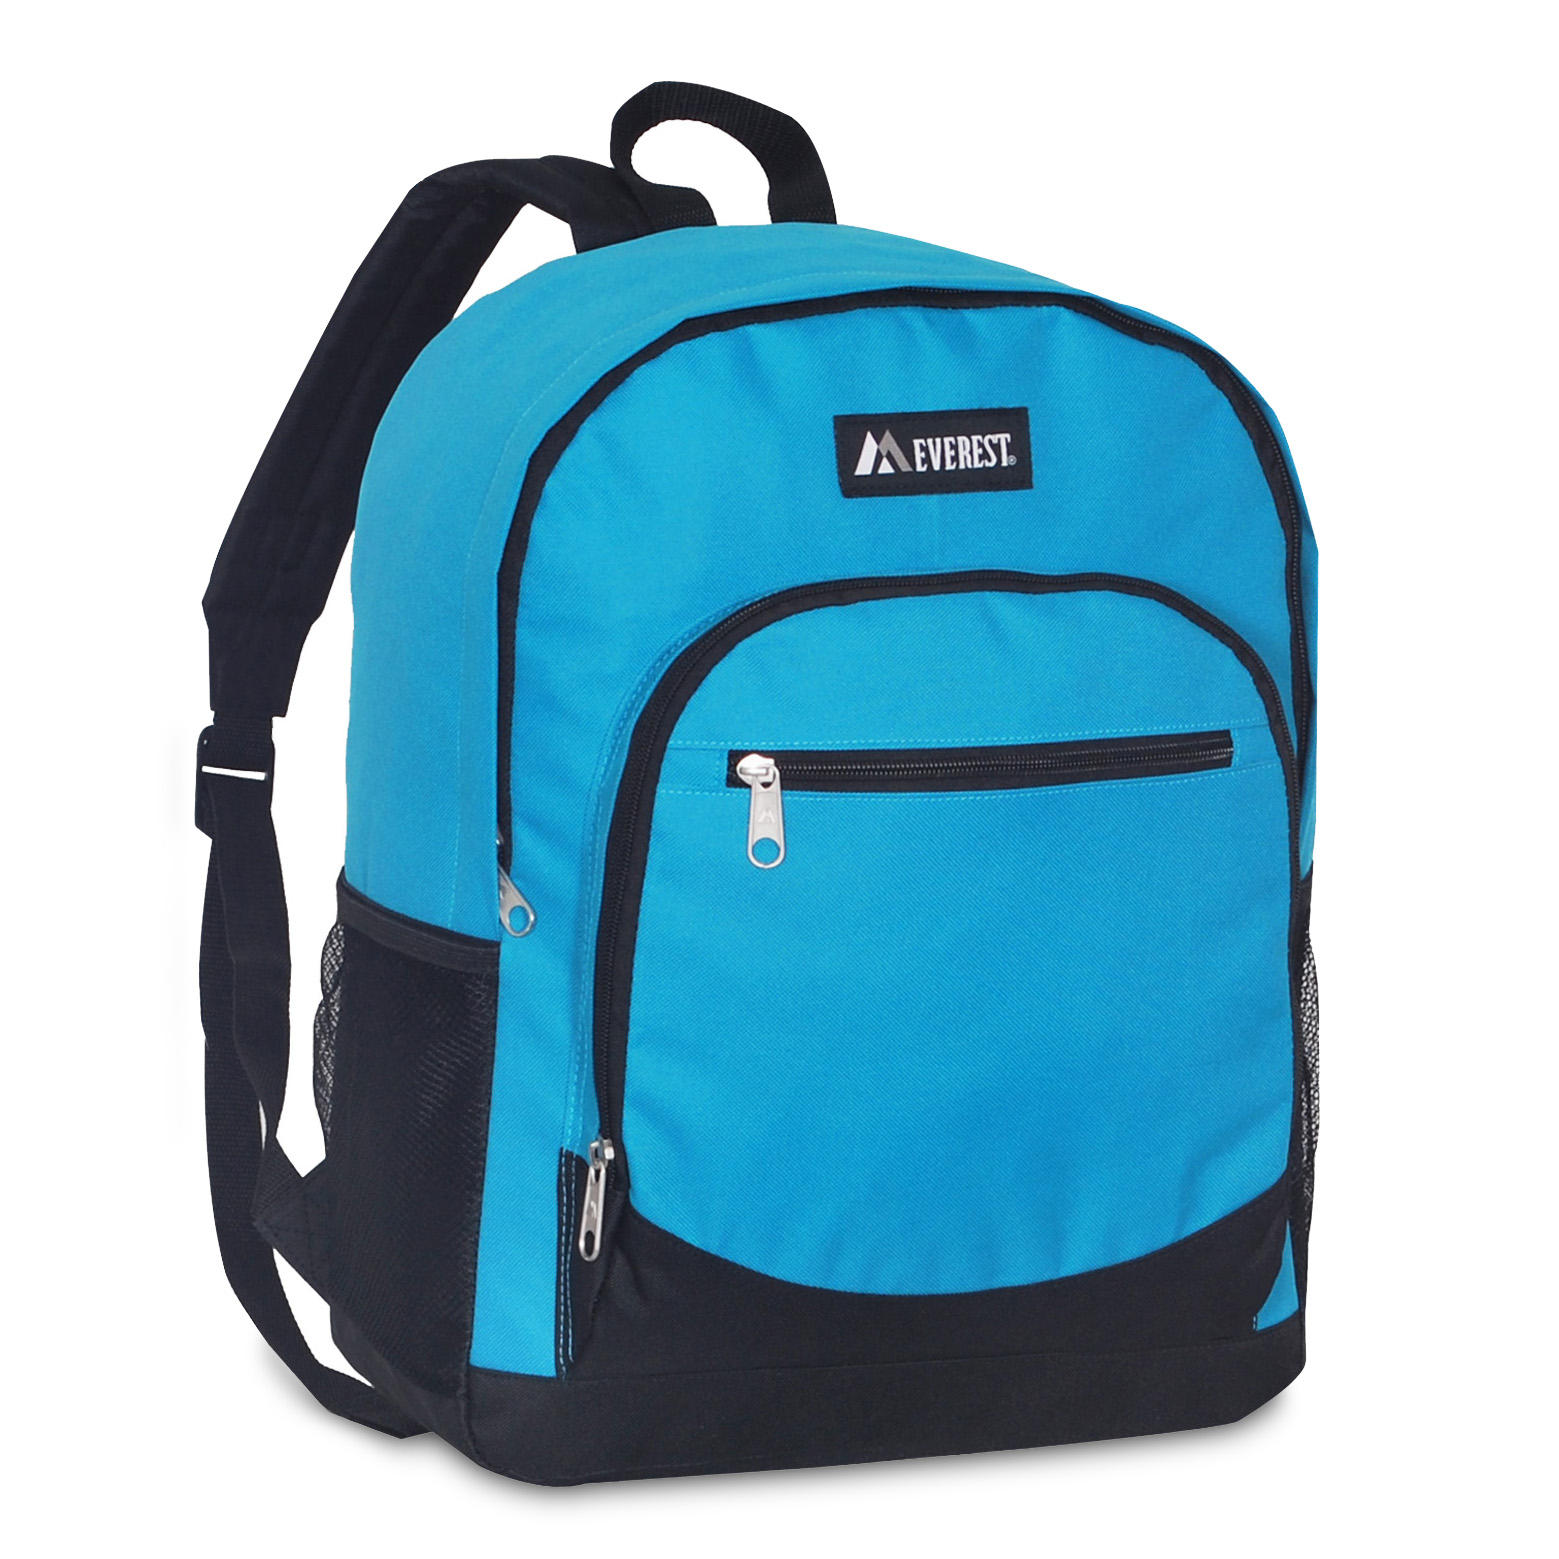 Everest Casual Backpack w/Side Mesh Pocket